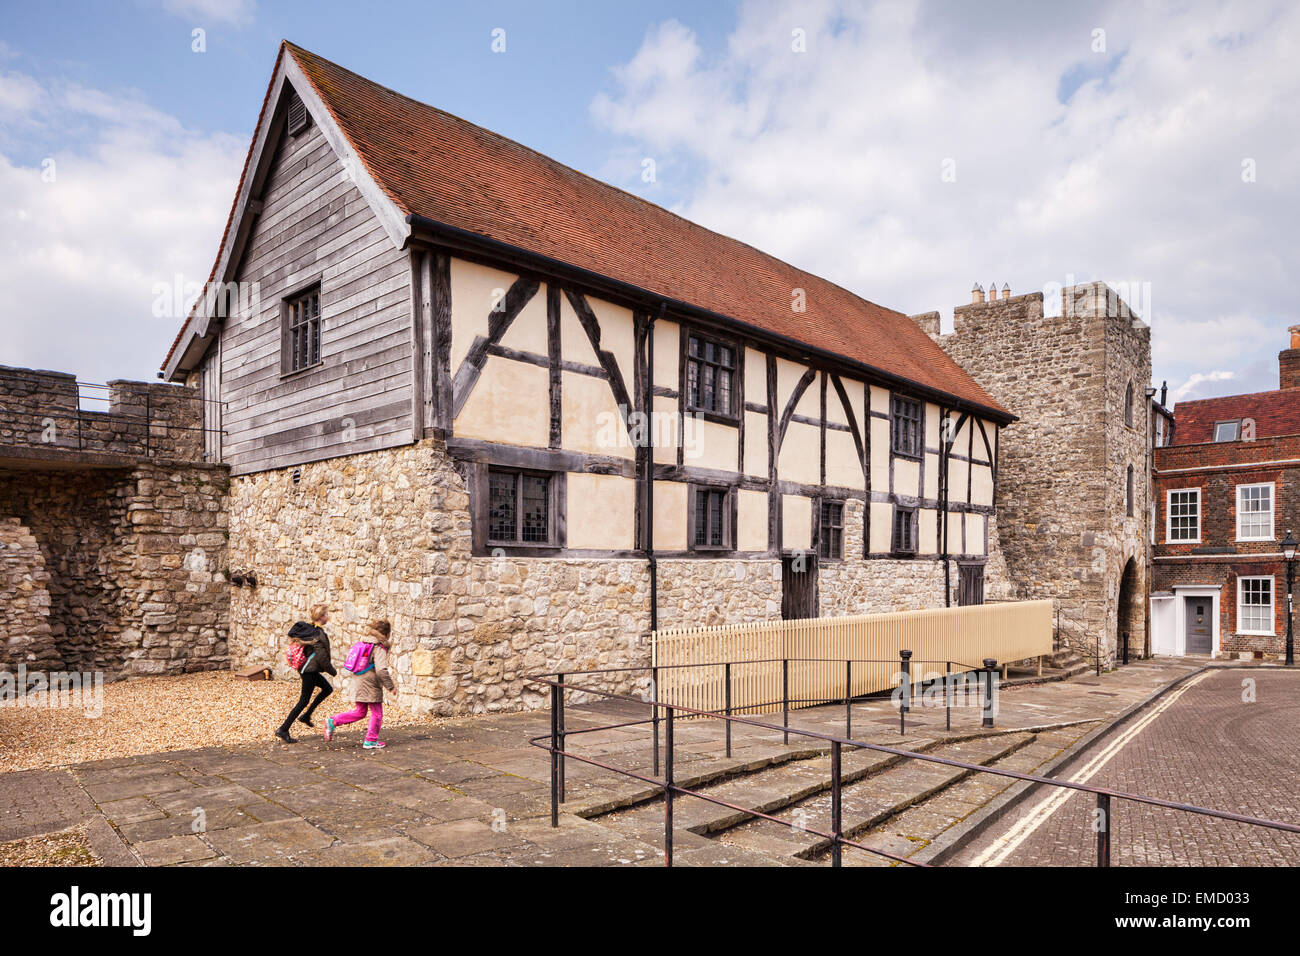 Westgate Hall and the old Westgate, Southampton, Hampshire, England. - Stock Image